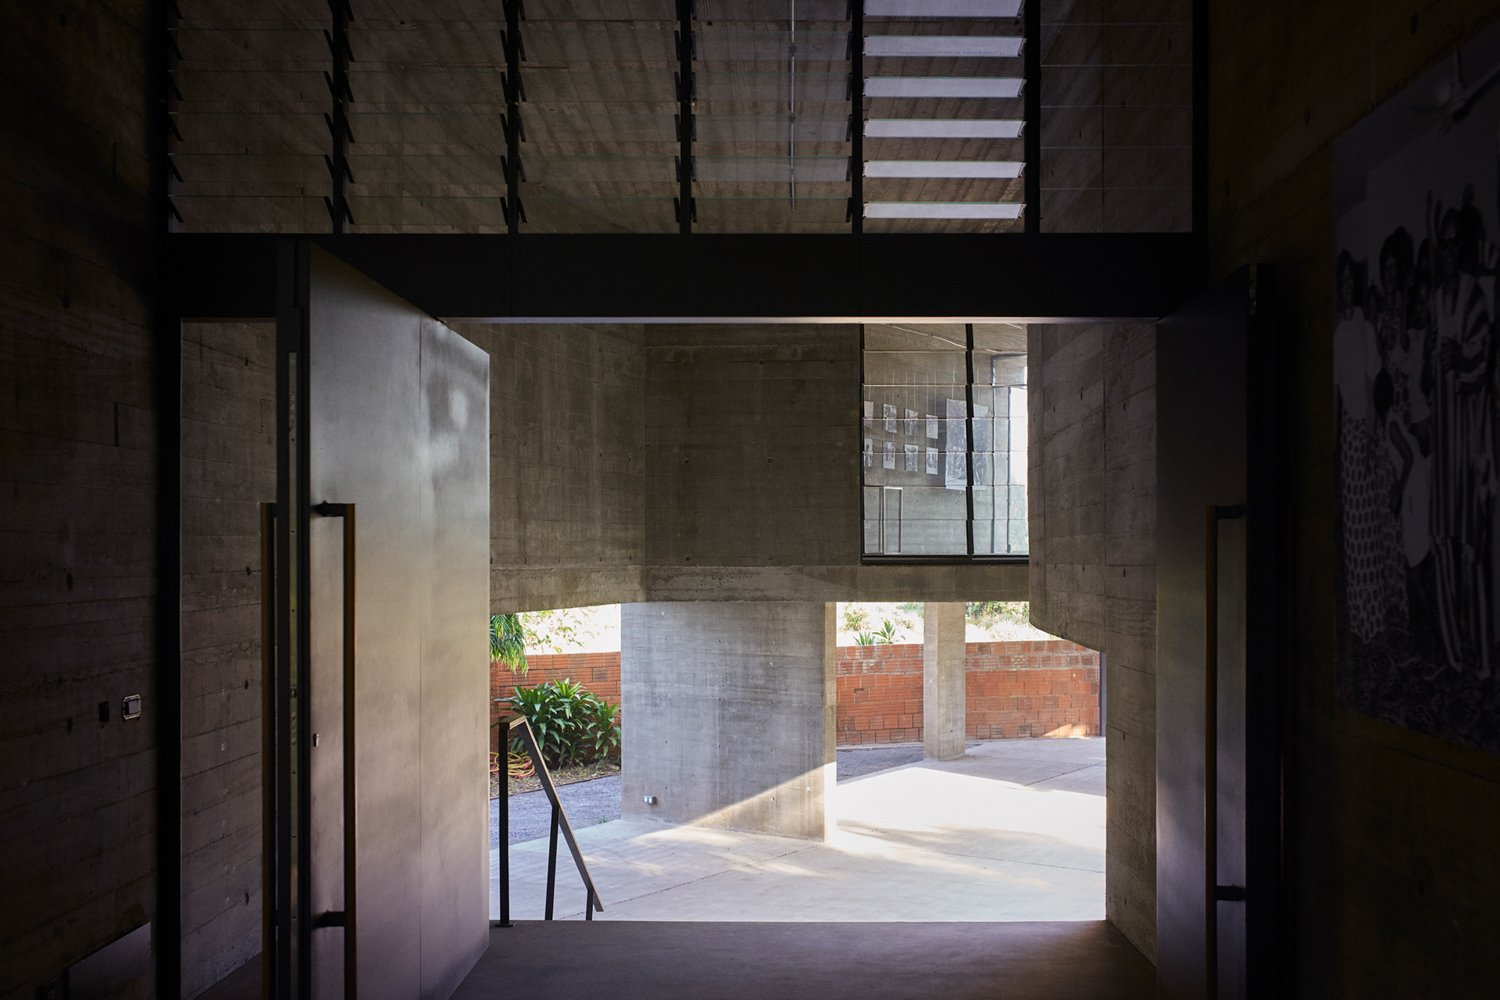 The design of the gallery creates many layered vistas through the building and the site, giving character to the spaces while connecting it to the grounds Julien Lanoo